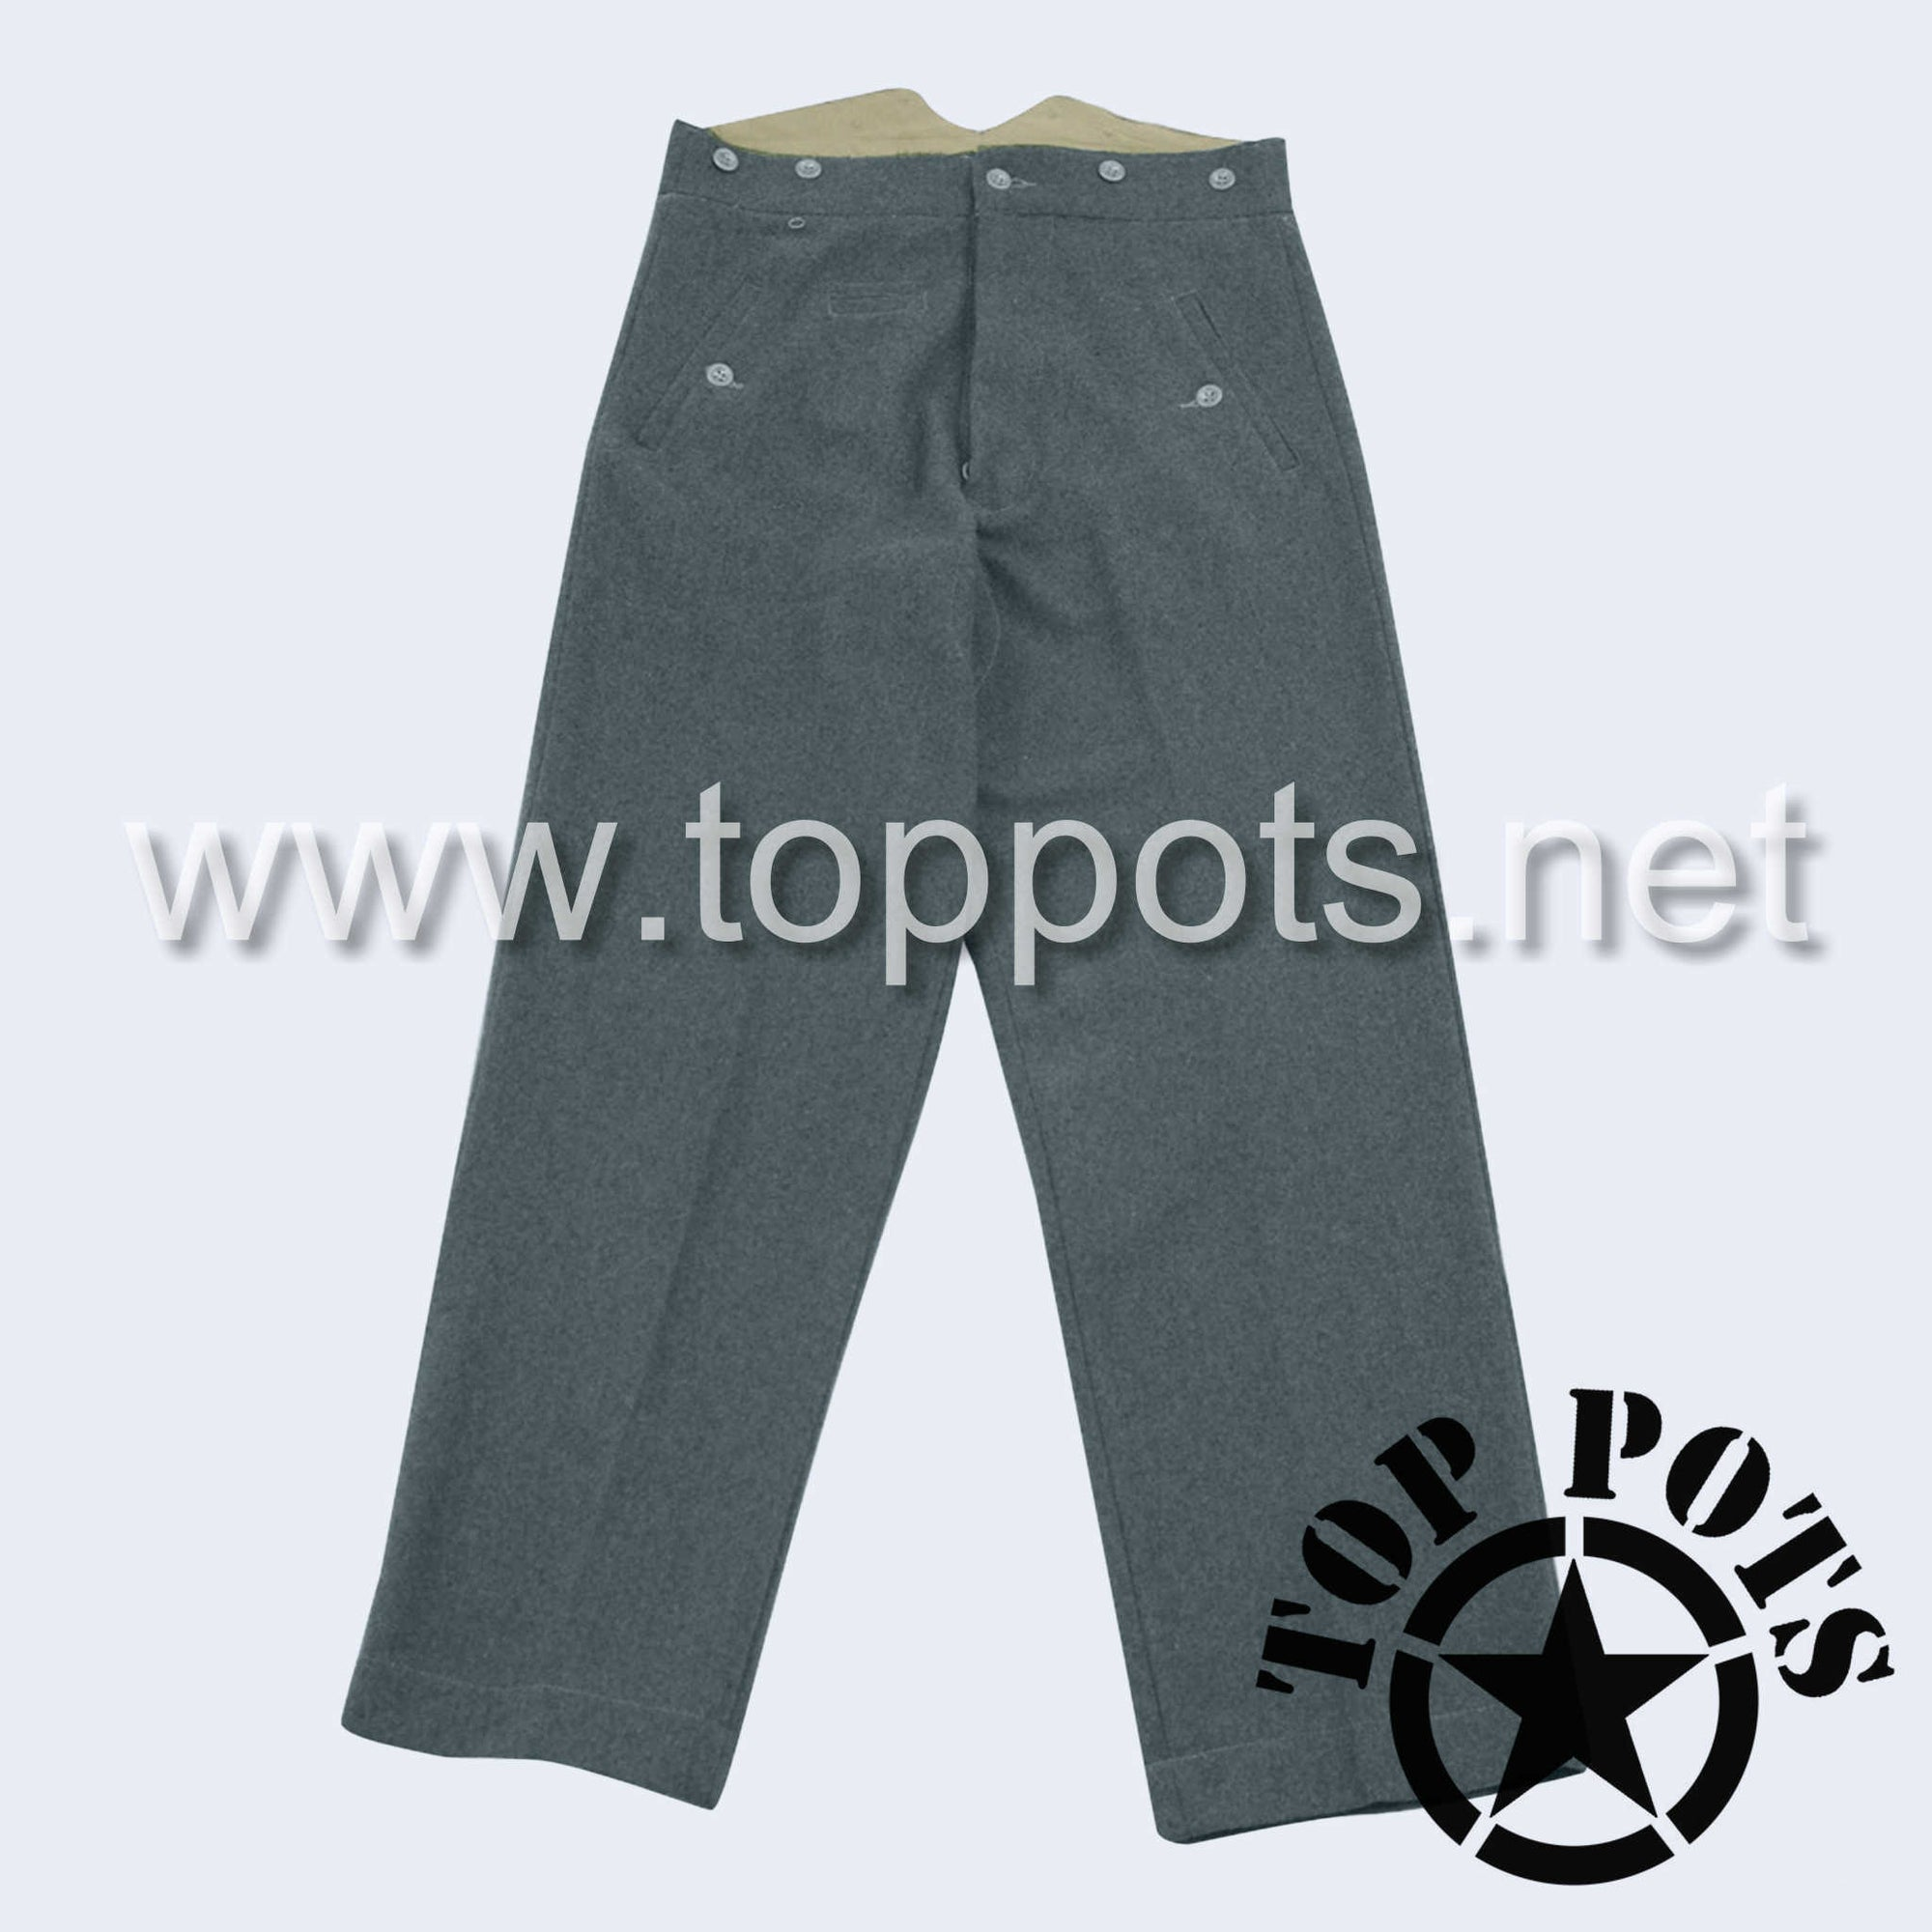 WWII German Army M1940 Waffen SS Uniform Enlisted Trouser Pants Blue-Green Grey Italian Wool